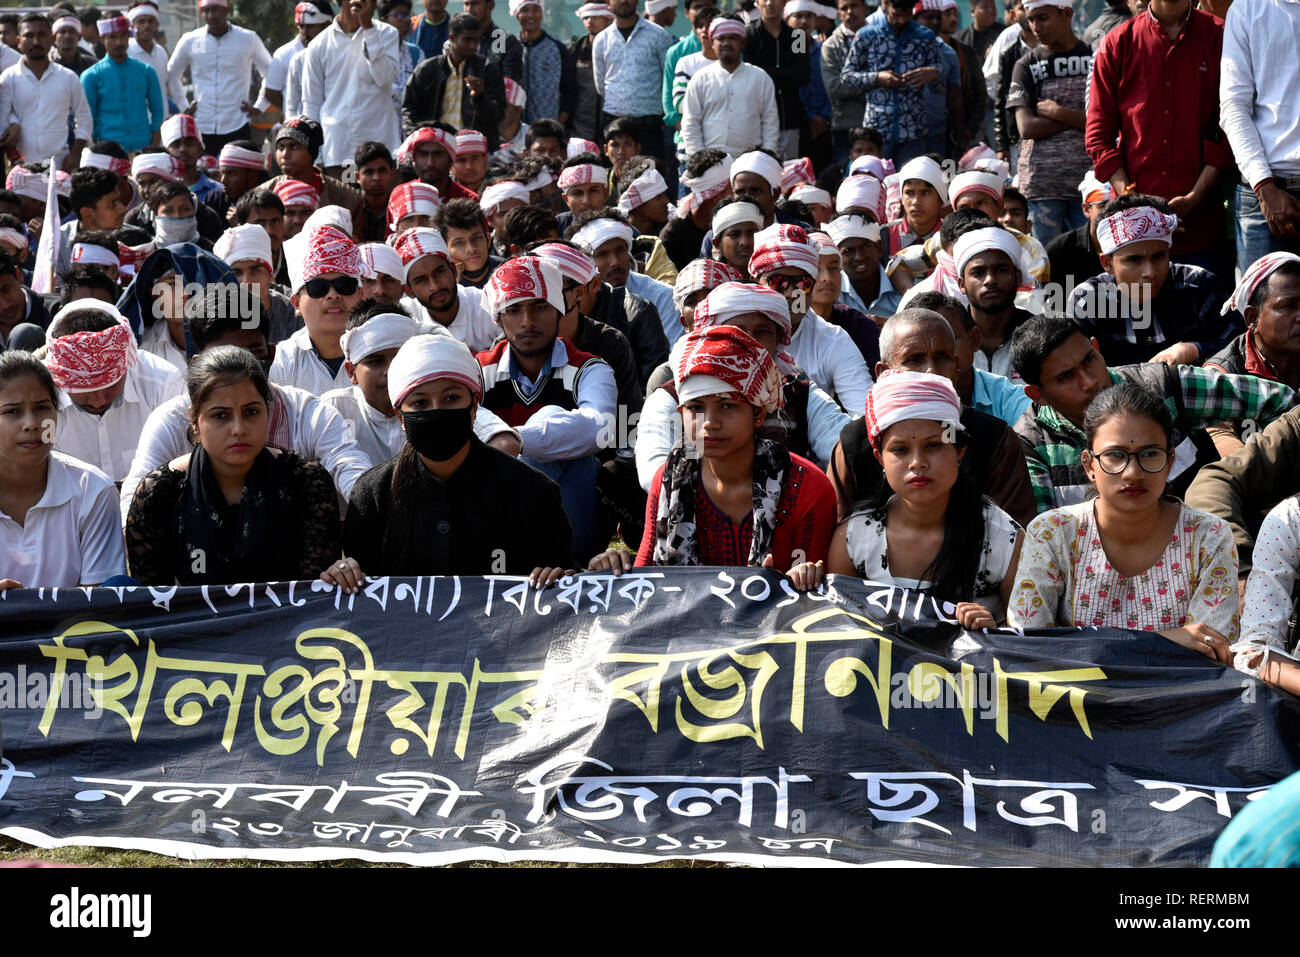 Guwahati, Assam, India. 23rd Jan 2019. Protest against the much debated Citizenship (Amendment) Bill 2016. Guwahati, Assam, India. 23 January 2019. The All Assam Students' Union (AASU) organises a mass agitation 'Bajra Ninad' in protest against the much debated Citizenship (Amendment) Bill 2016, proposal to provide citizenship or stay rights to minorities from Bangladesh, Pakistan and Afghanistan in India. Besides AASU, 30 other organizations of the state have taken part in the protest. Credit: David Talukdar/Alamy Live News - Stock Image